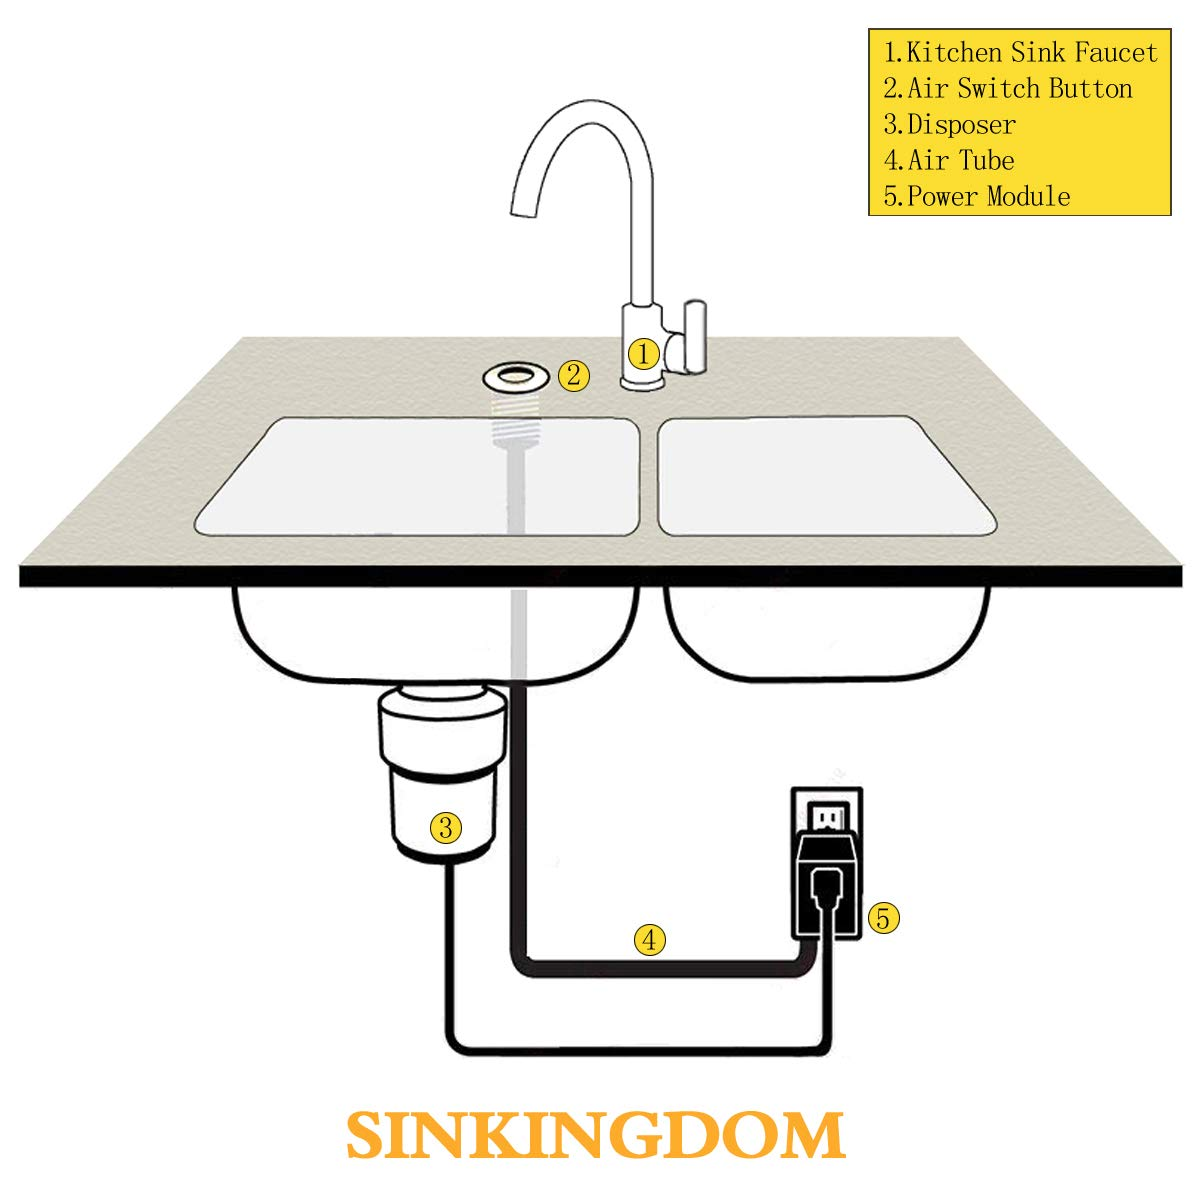 SINKINGDOM SinkTop Air Switch Kit (Full Brass) for Garbage Disposal, Cordless (Champagne Bronze) by SINKINGDOM (Image #7)